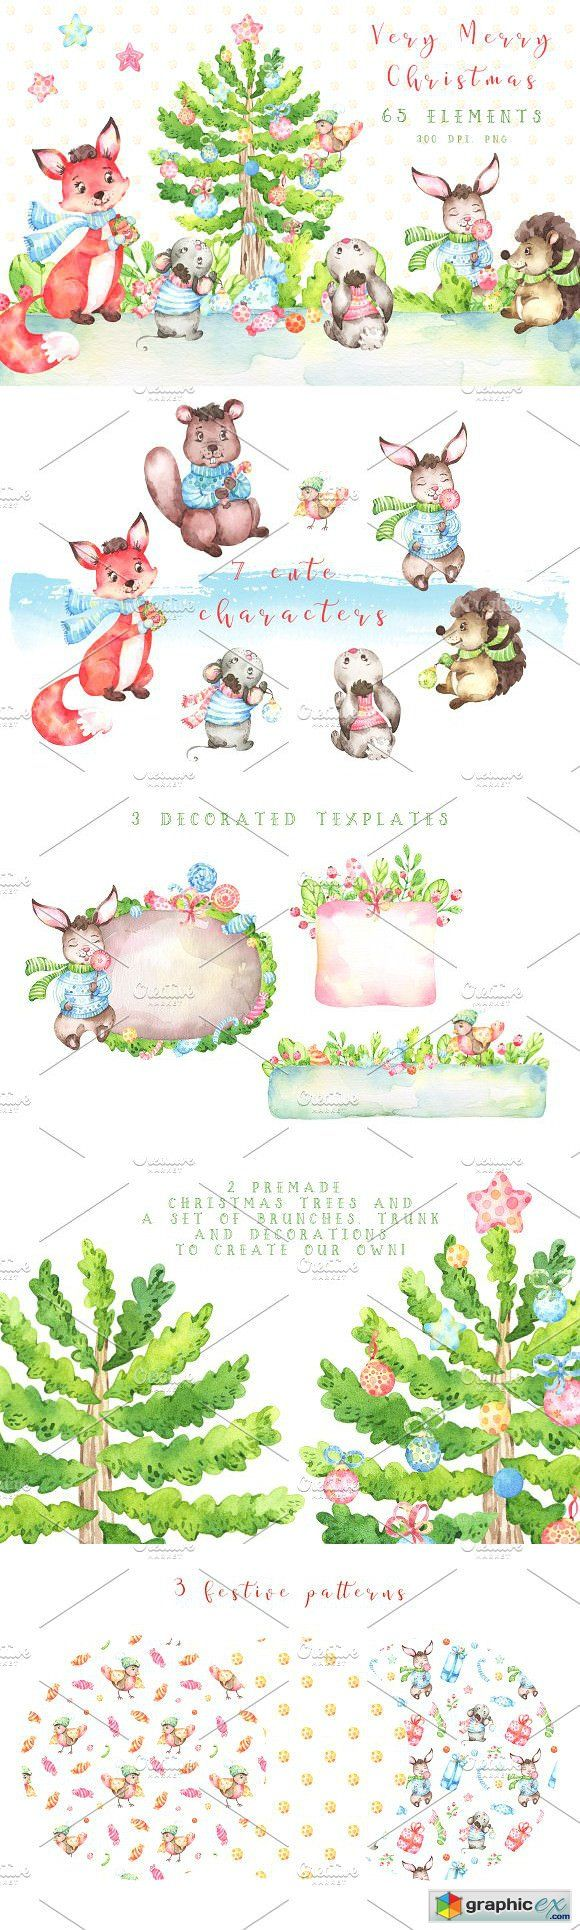 Very Merry Christmas Watercolor set  stock images